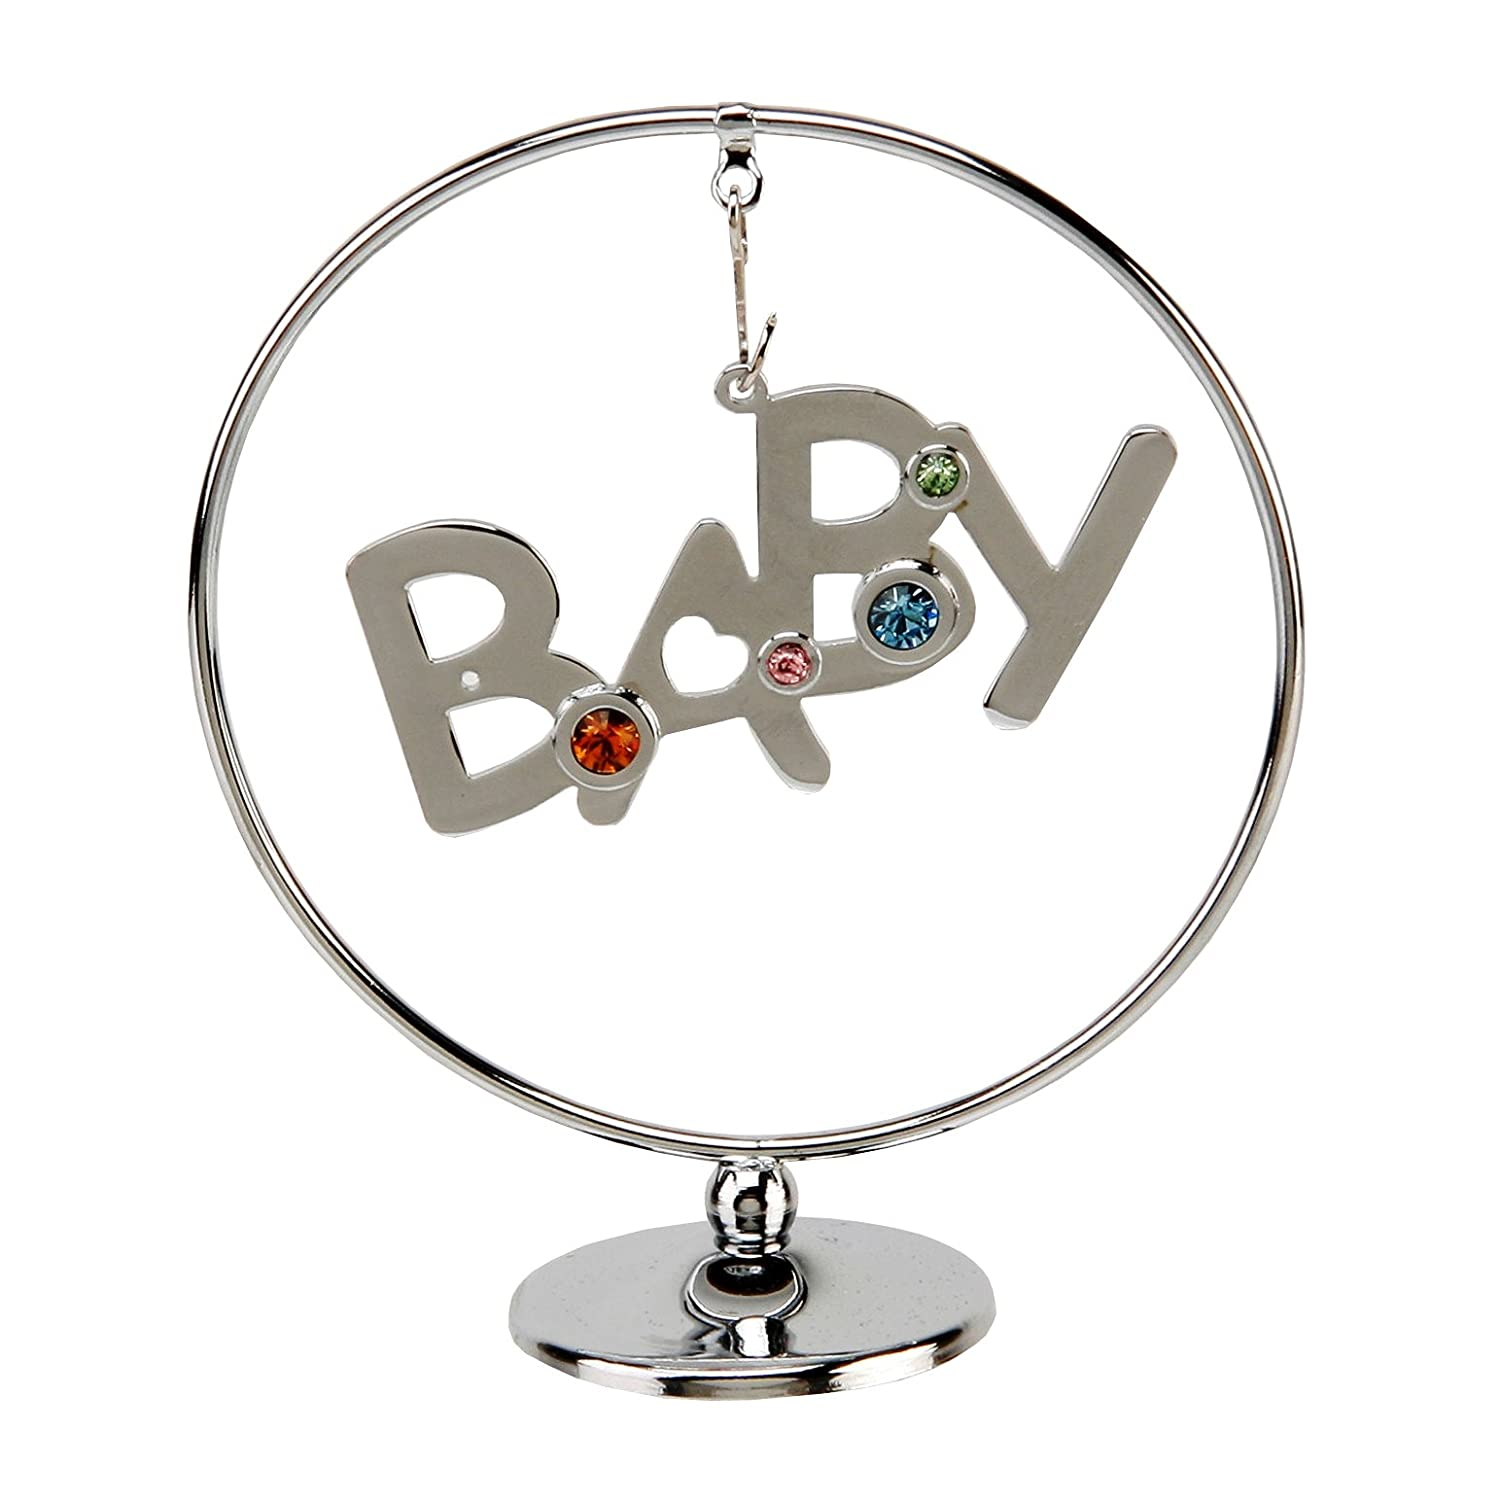 CRYSTOCRAFT CHROME PLATED CIRCLE RING - 'BABY'